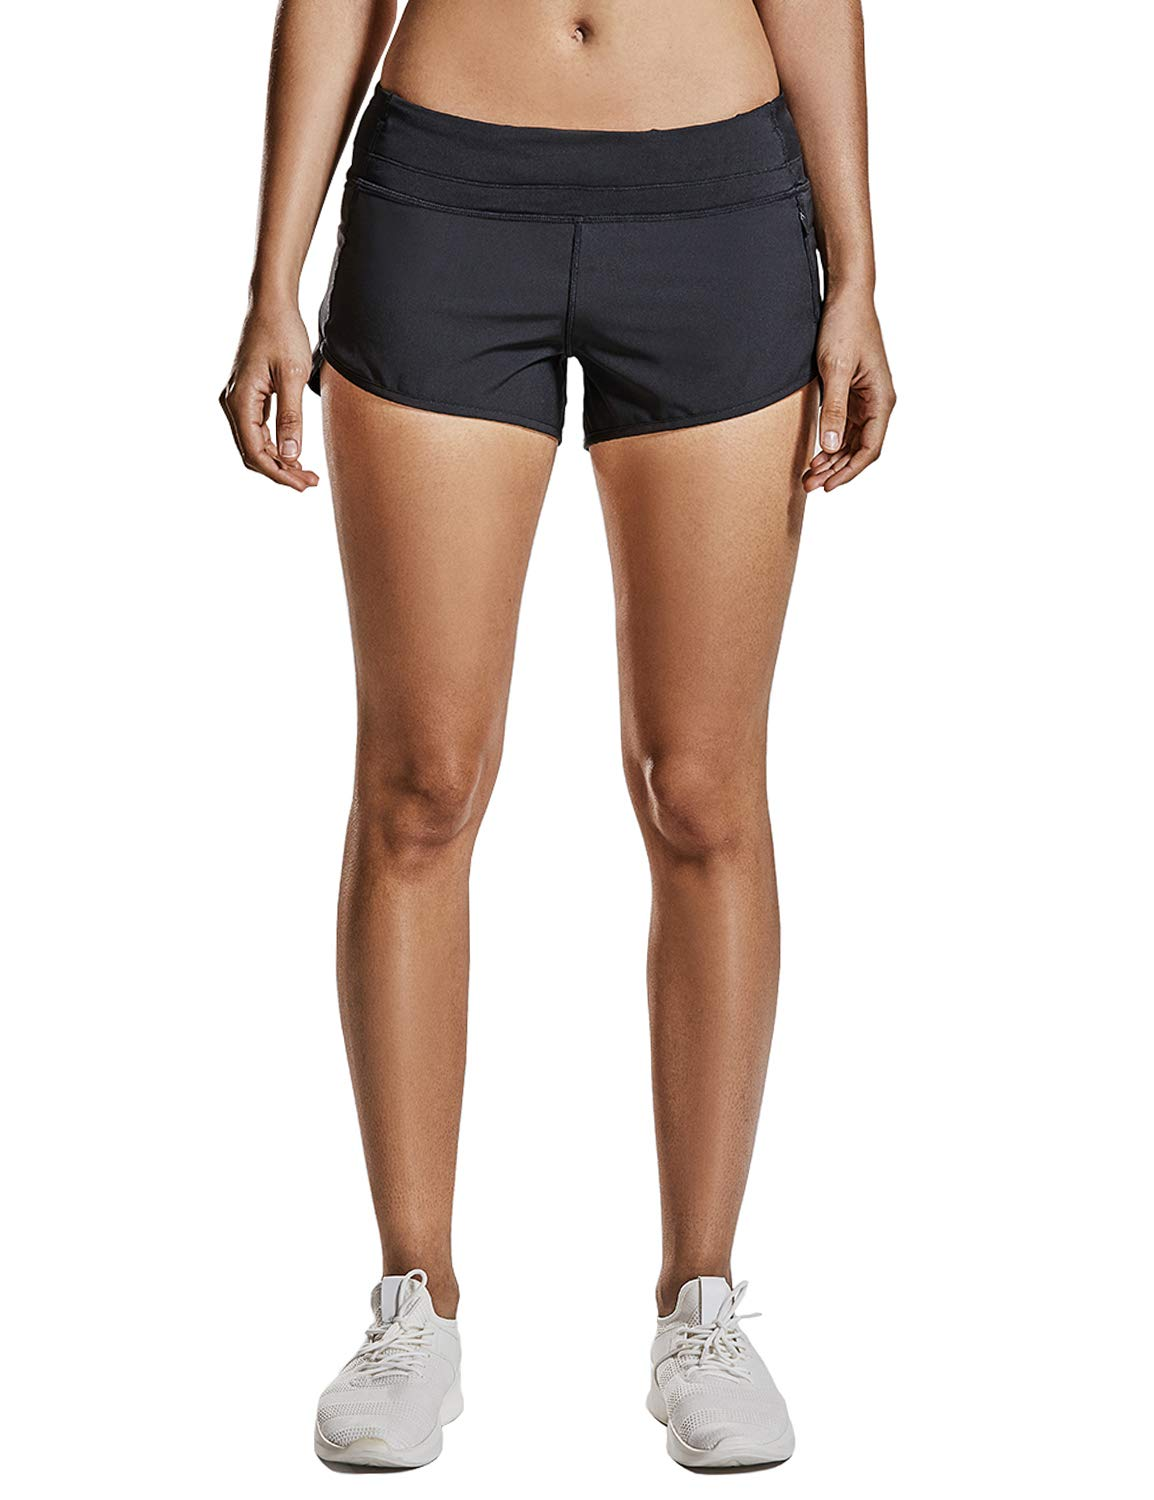 CRZ YOGA Womens Drawstring Fitness Athletic Sports Running Shorts with Pocket 4 inch